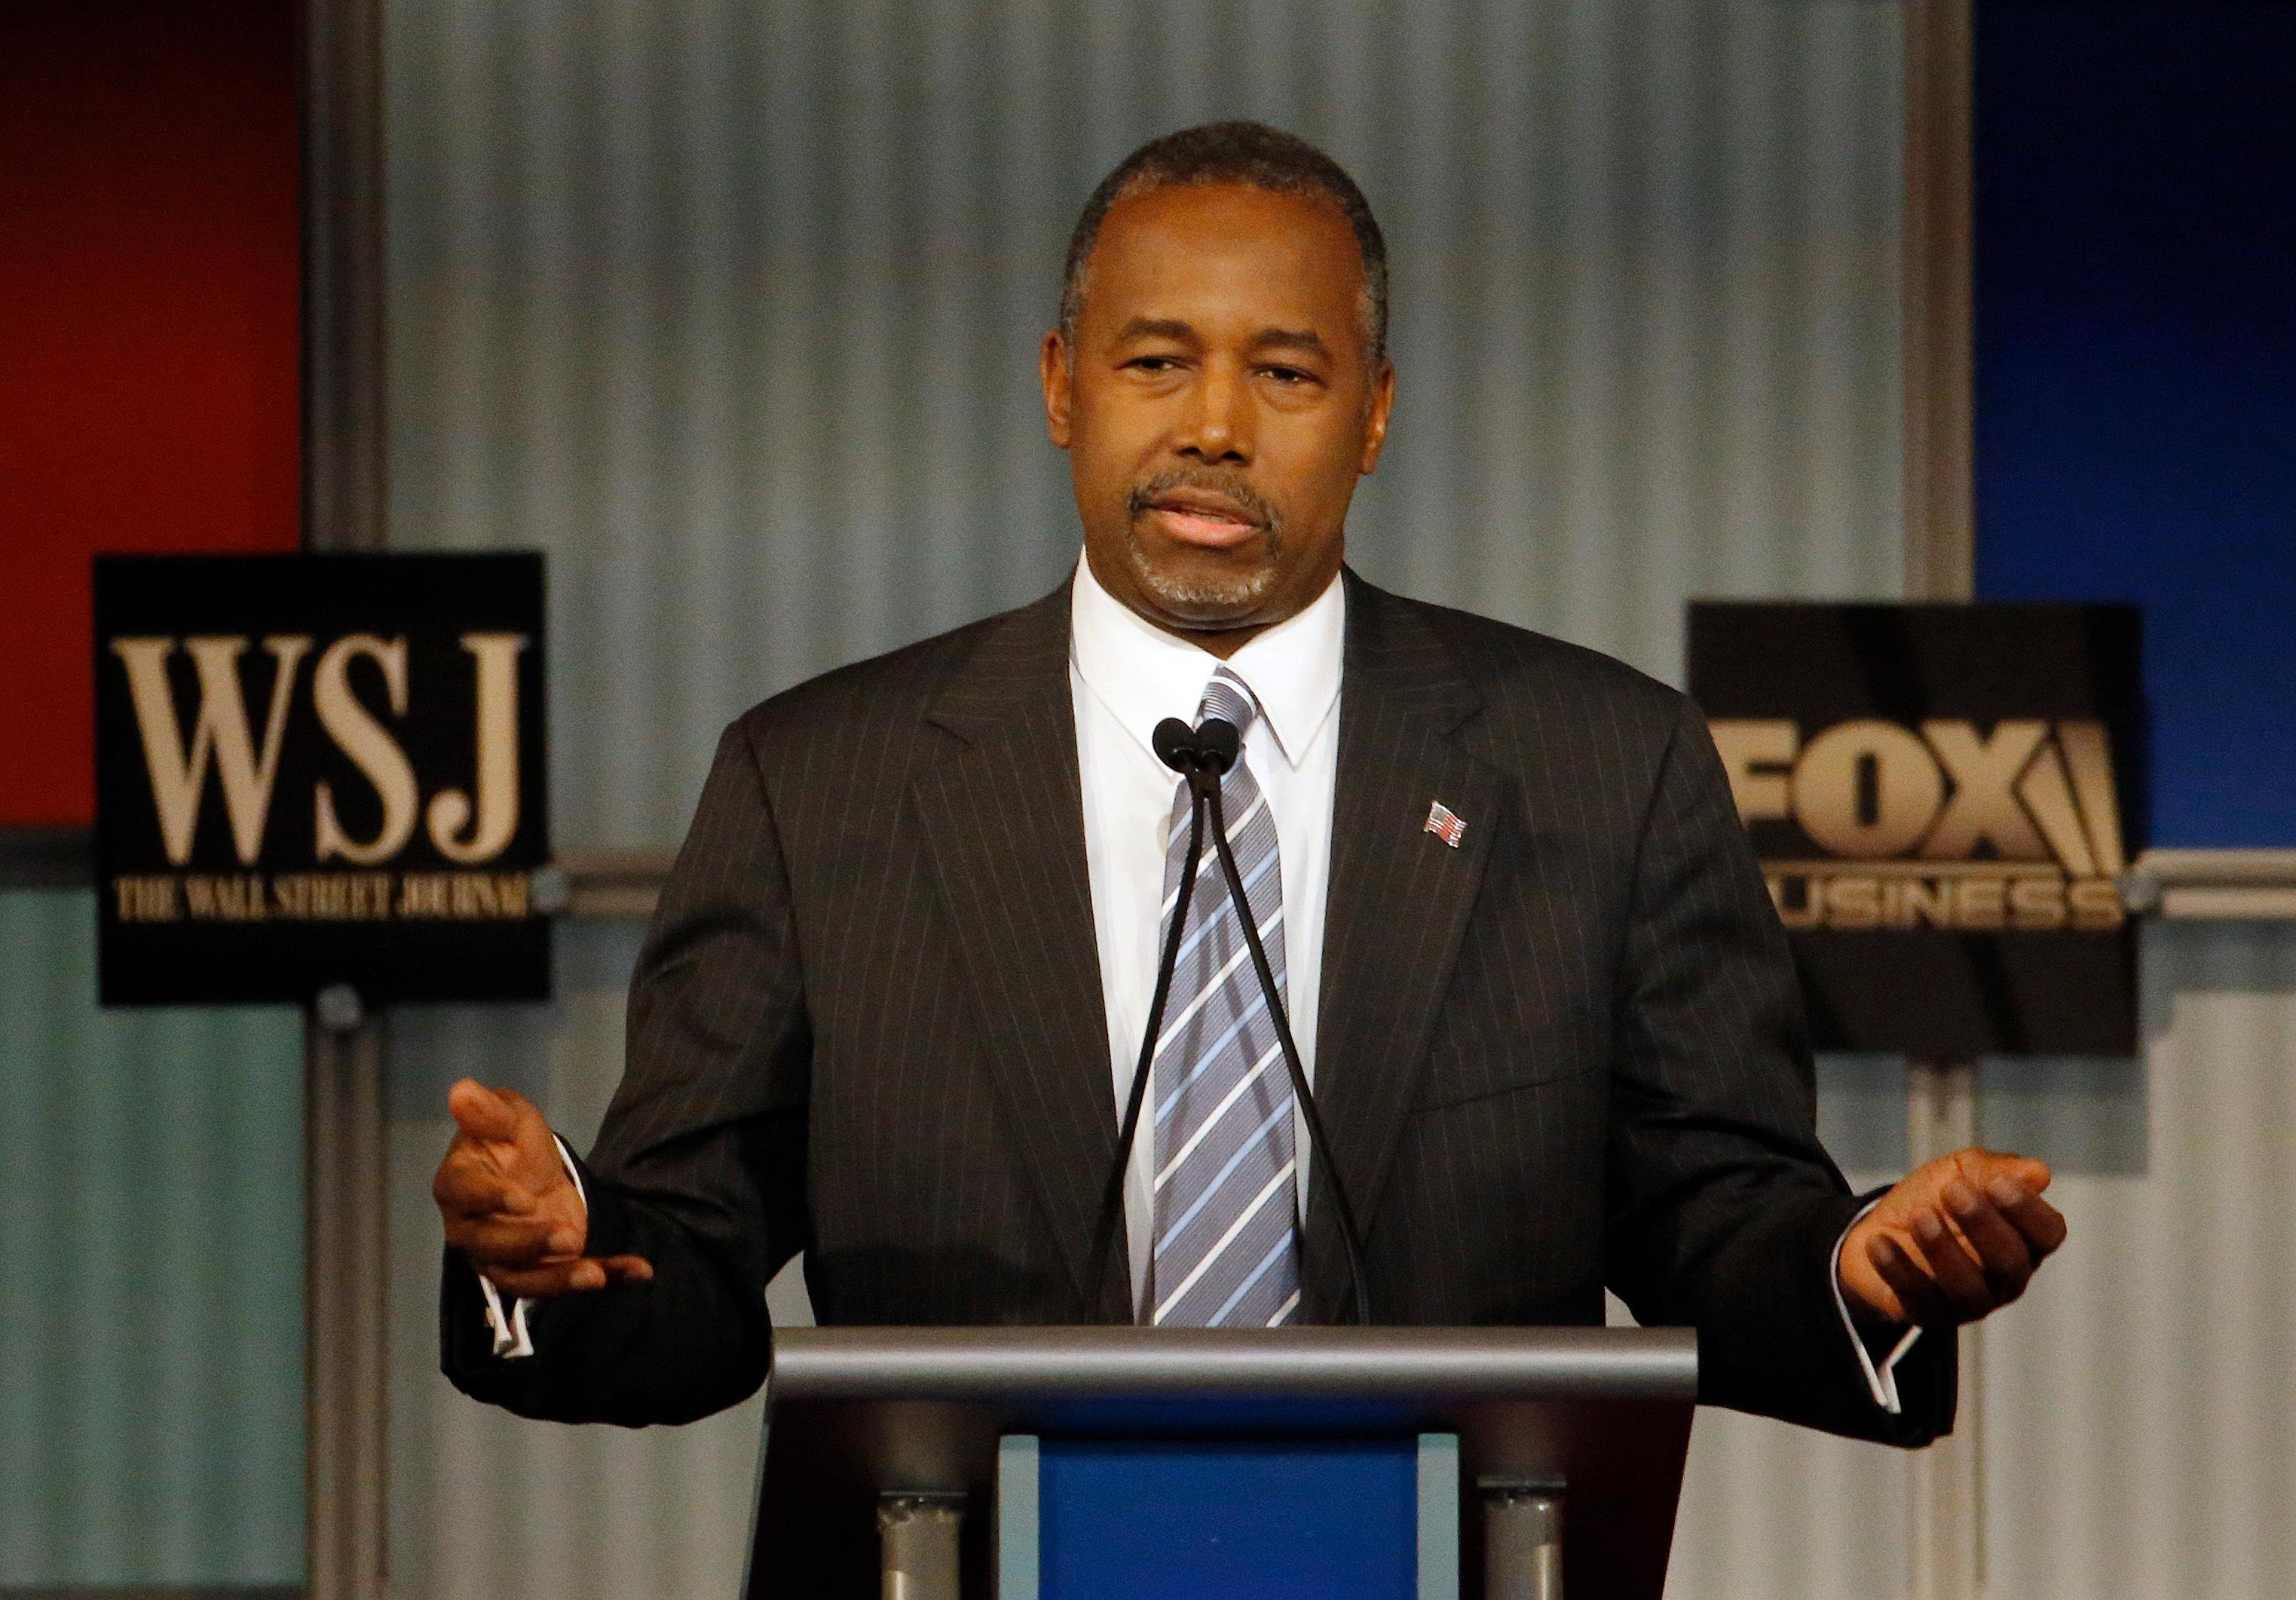 biography of dr benjamin carson Biography: benjamin s carson, md pediatric neurosurgeon benjamin s carson, md date of birth: september 18, 1951 benjamin carson was born in detroit, michigan his mother sonya had dropped out of school in the third grade, and married when she was only 13.